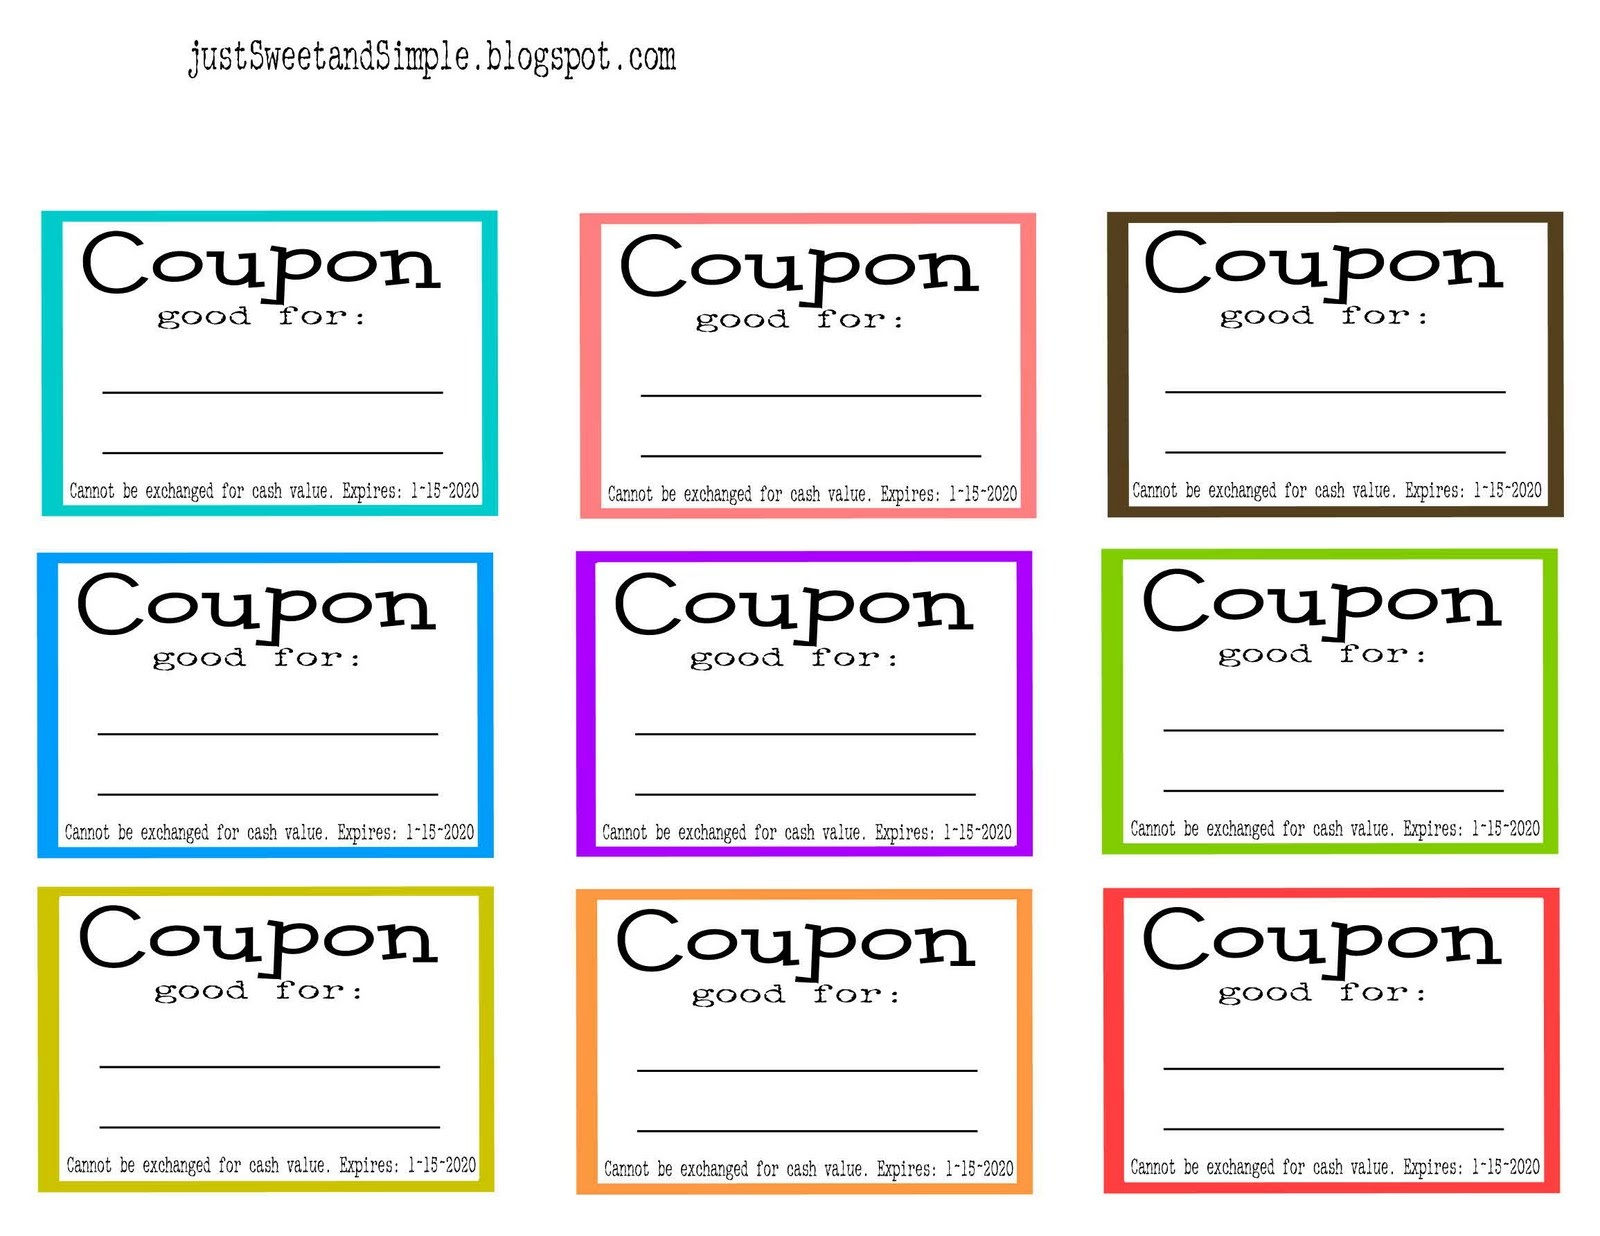 Lunch Coupons Format - Kaza.psstech.co - Free Sample Coupons Printable